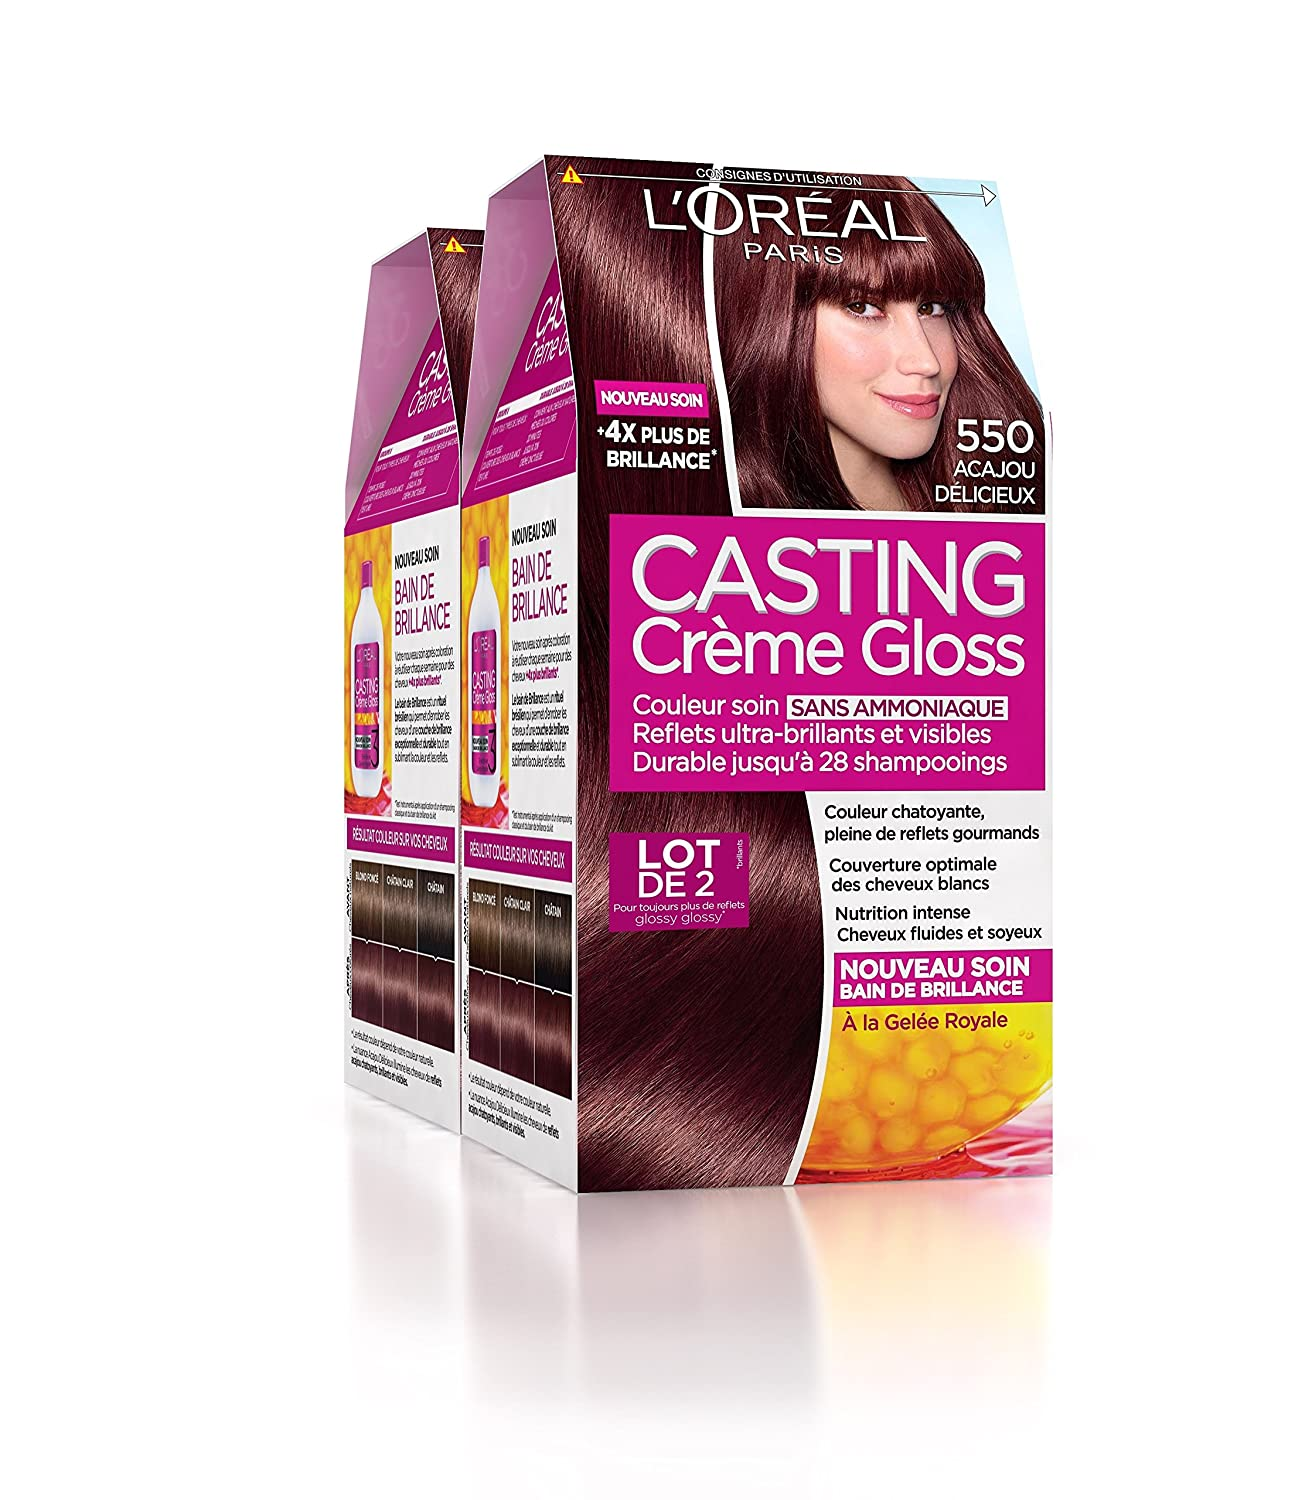 loral paris casting crme gloss coloration ton sur ton sans ammoniaque 550 acajou lot - Coloration Sans Ammoniaque Schwarzkopf